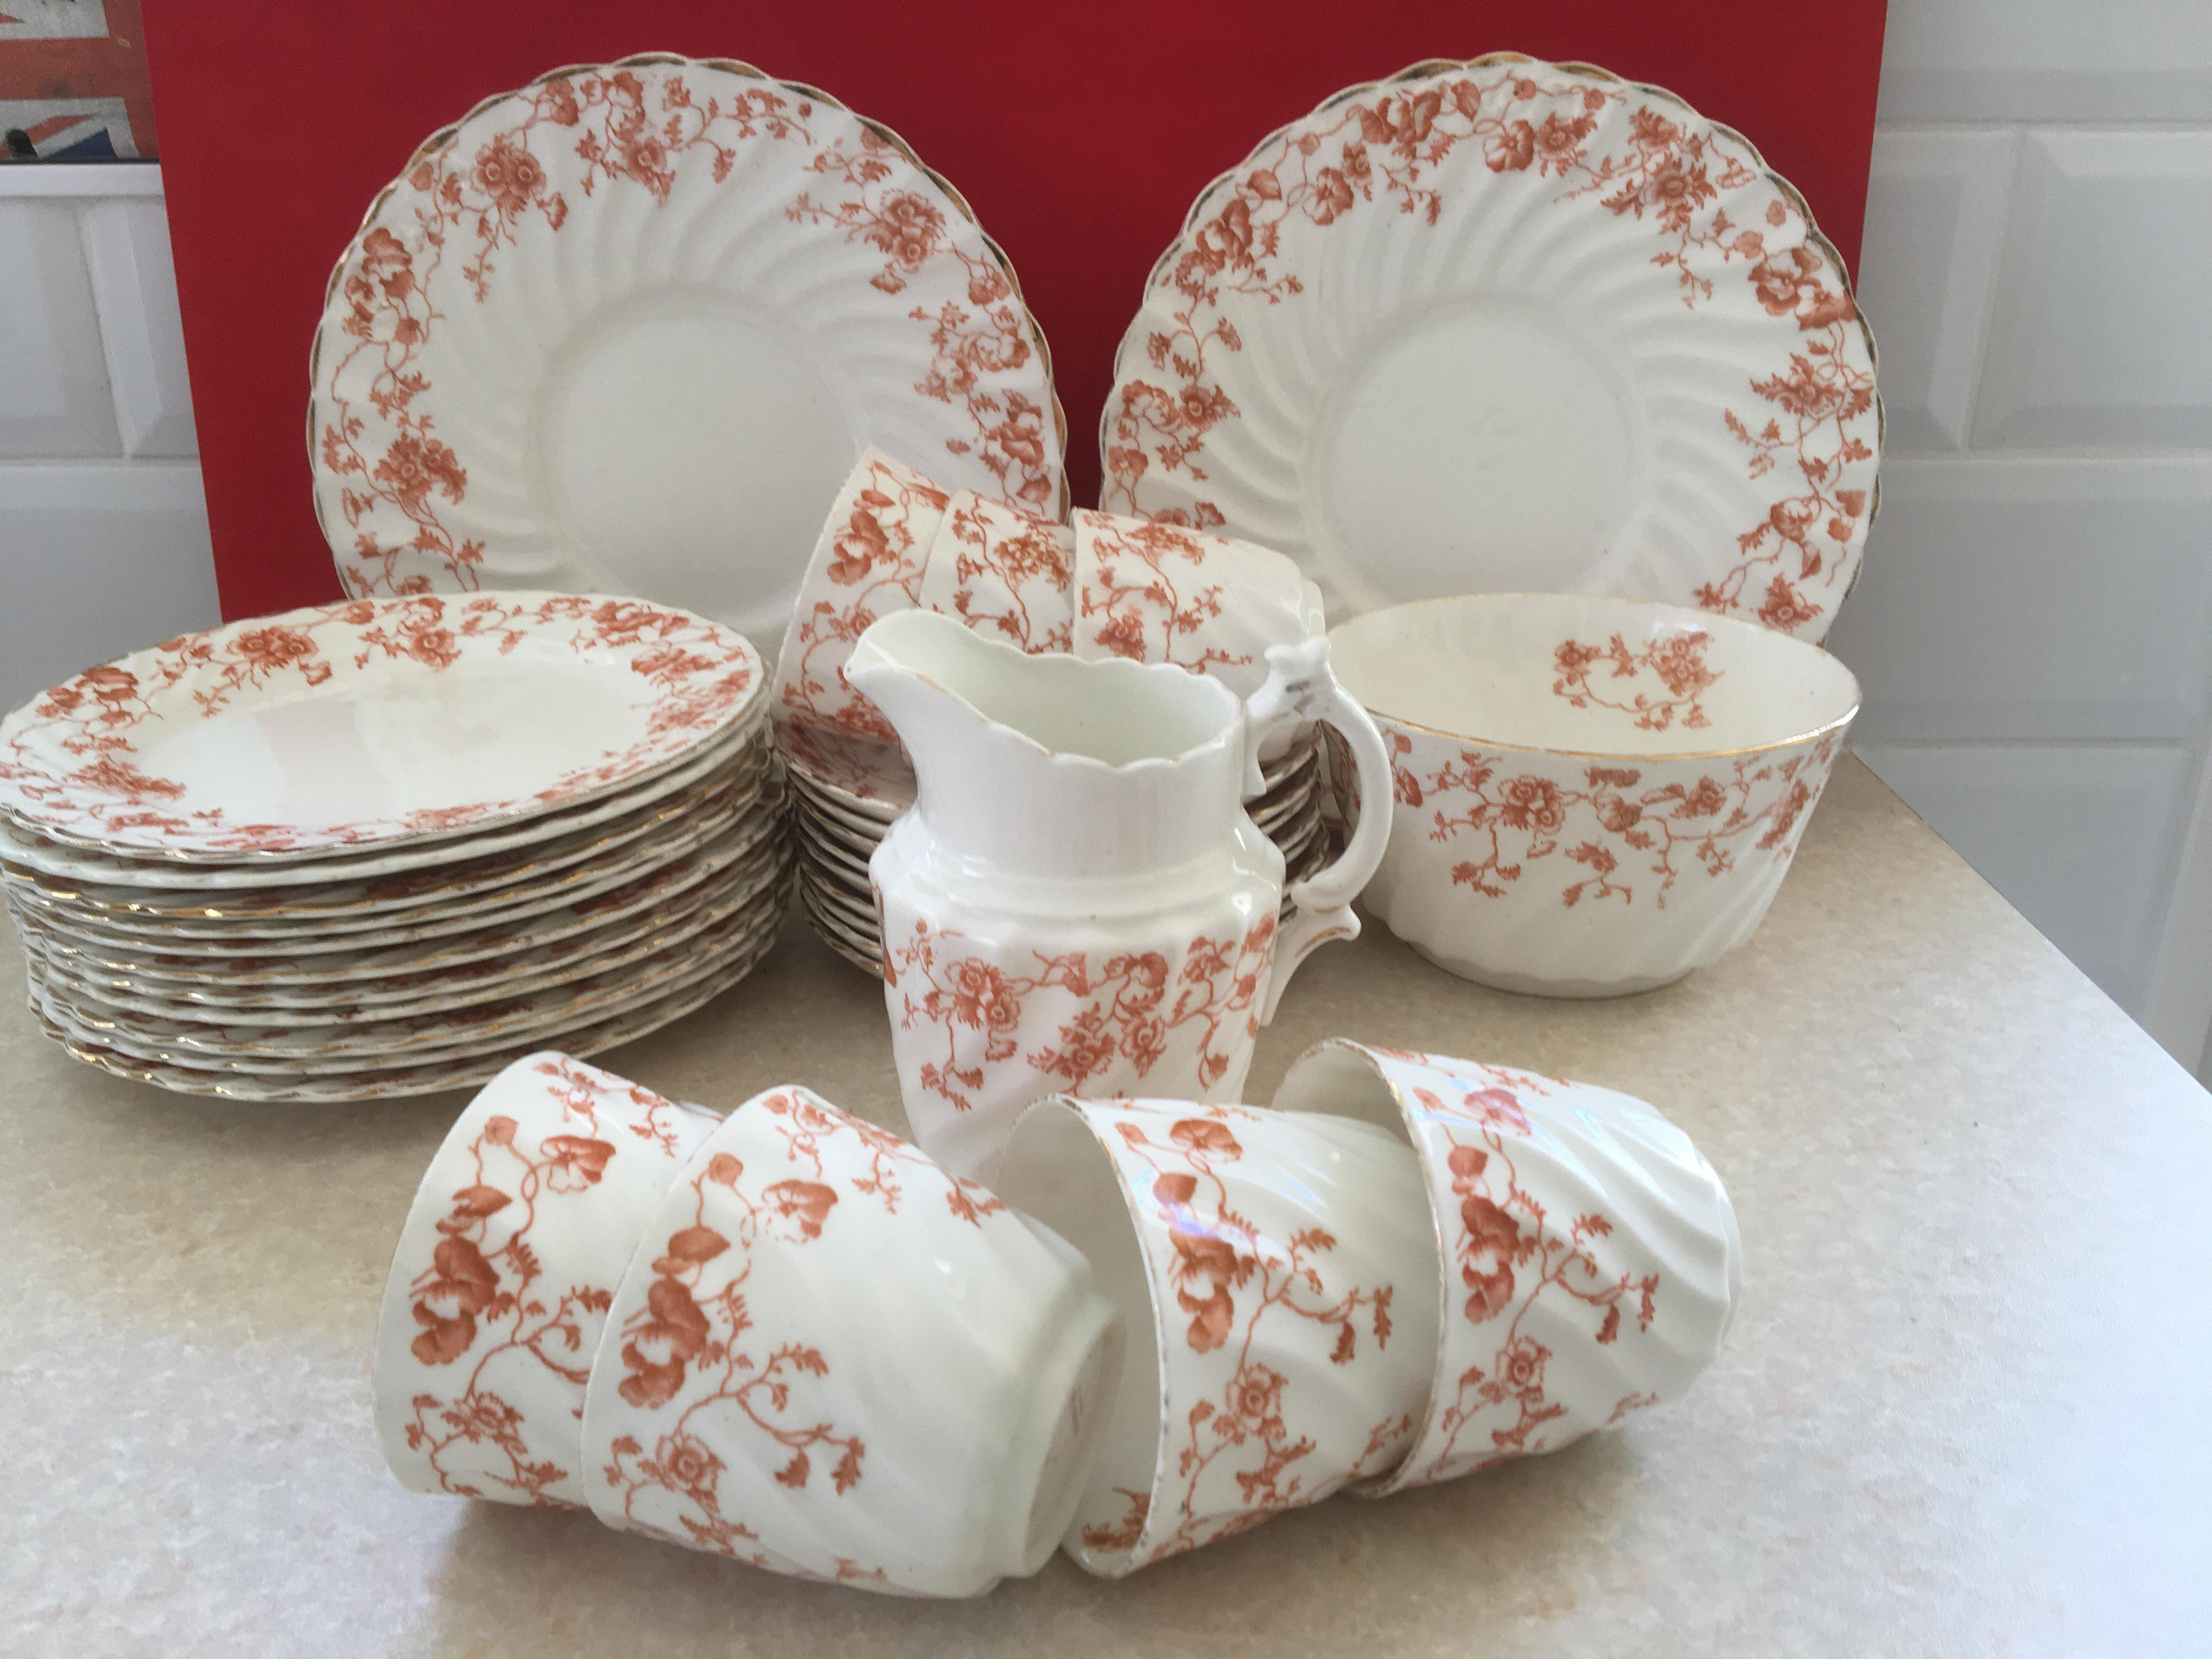 Antique Vintage China Tea Set by SF & Co of Stoke-on-Trent